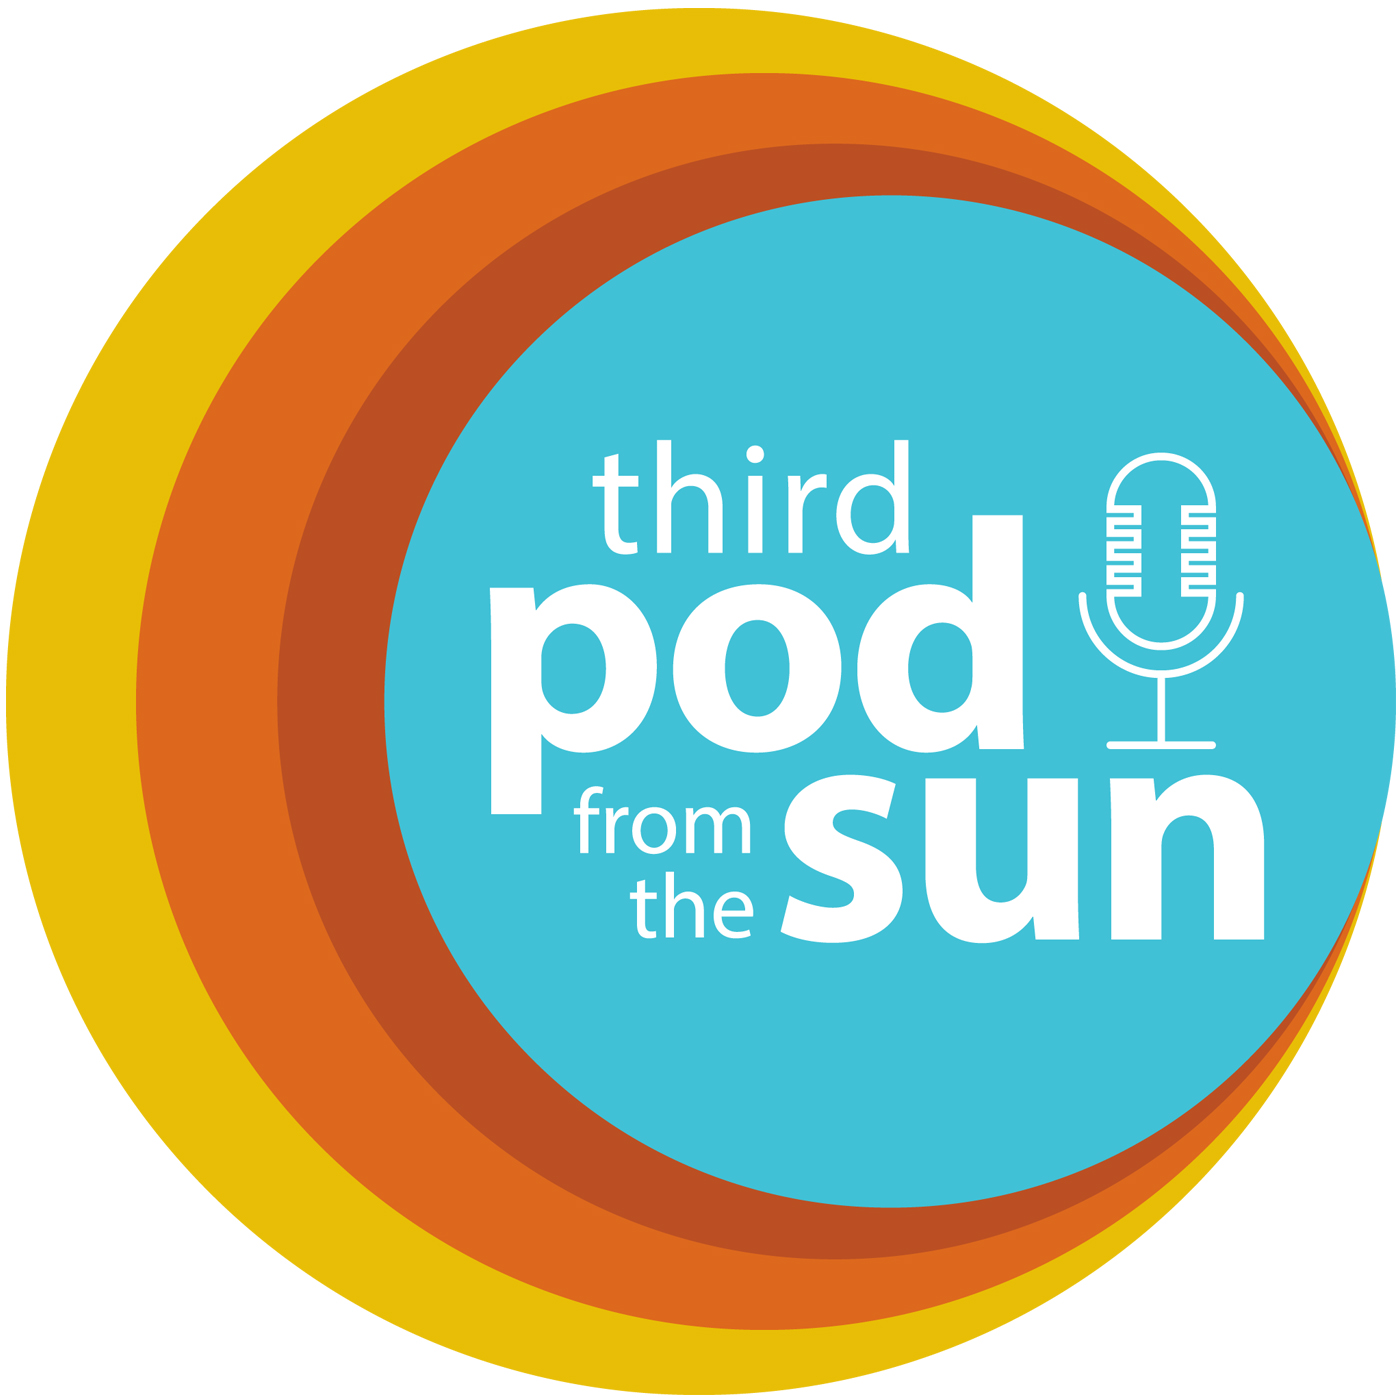 Third Pod from the Sun